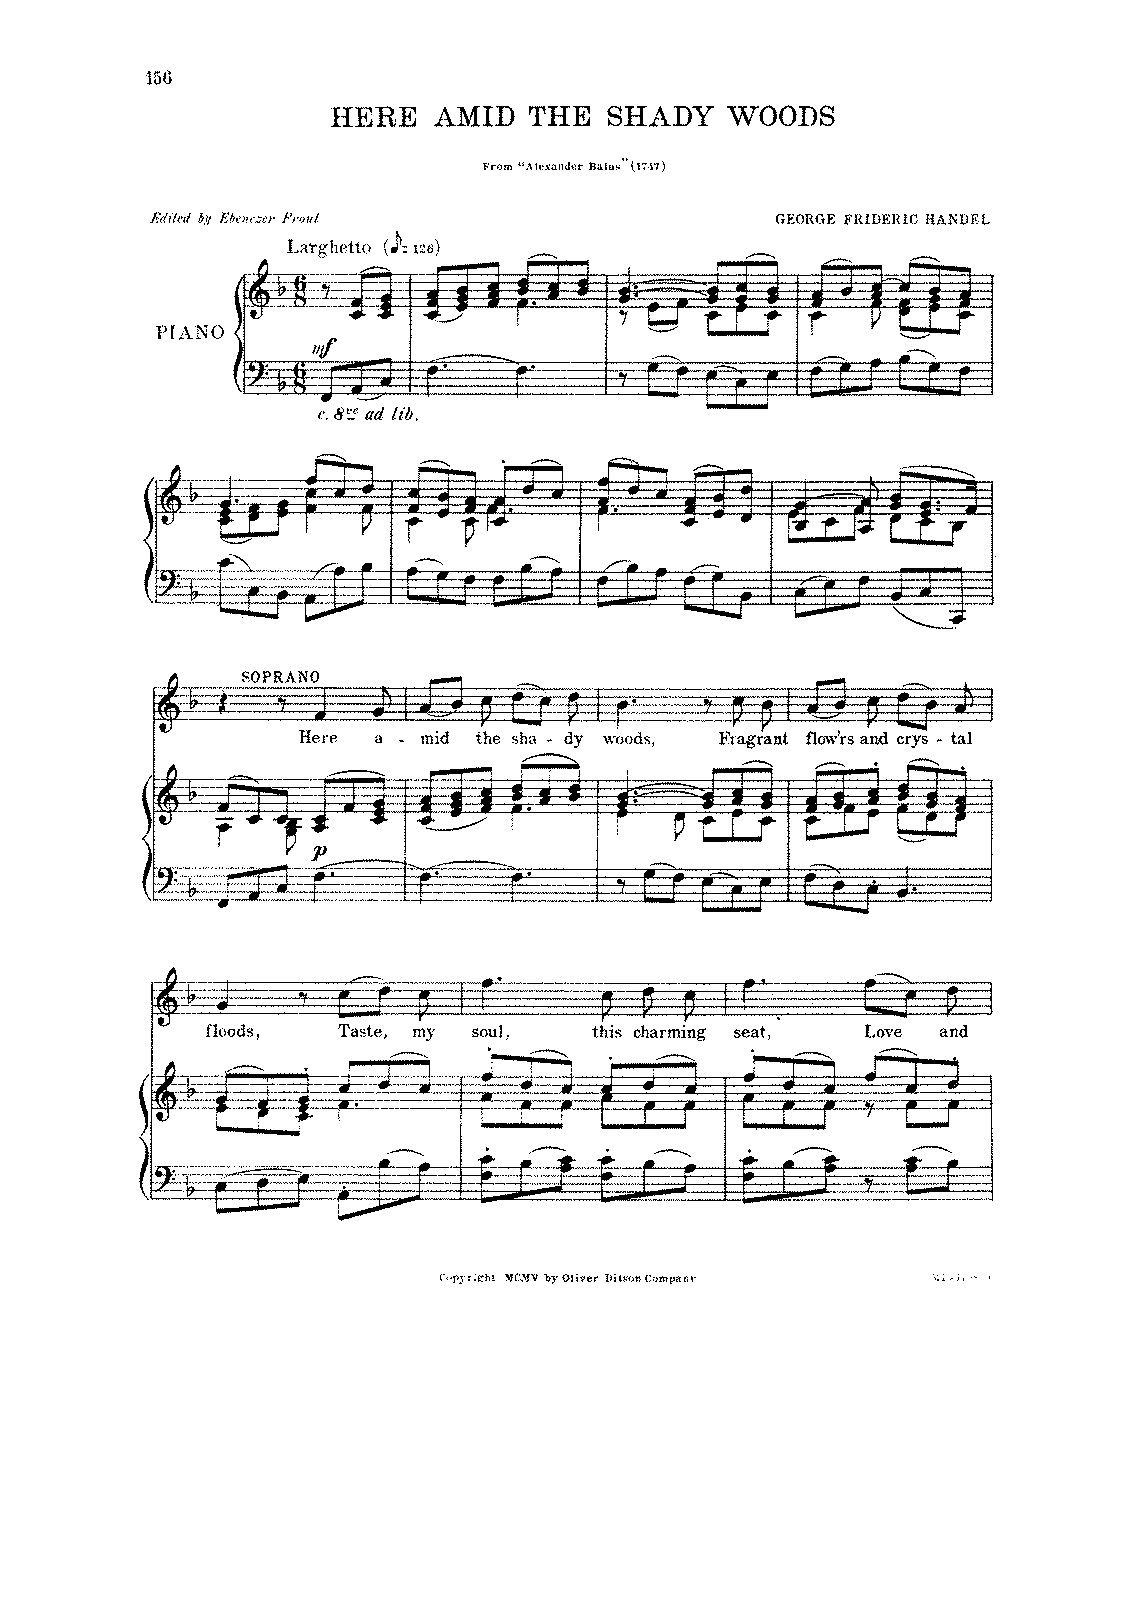 PMLP44612-Handel - Alexander Balus - Here amid the shady woods VS Sibley.1802.16201.pdf